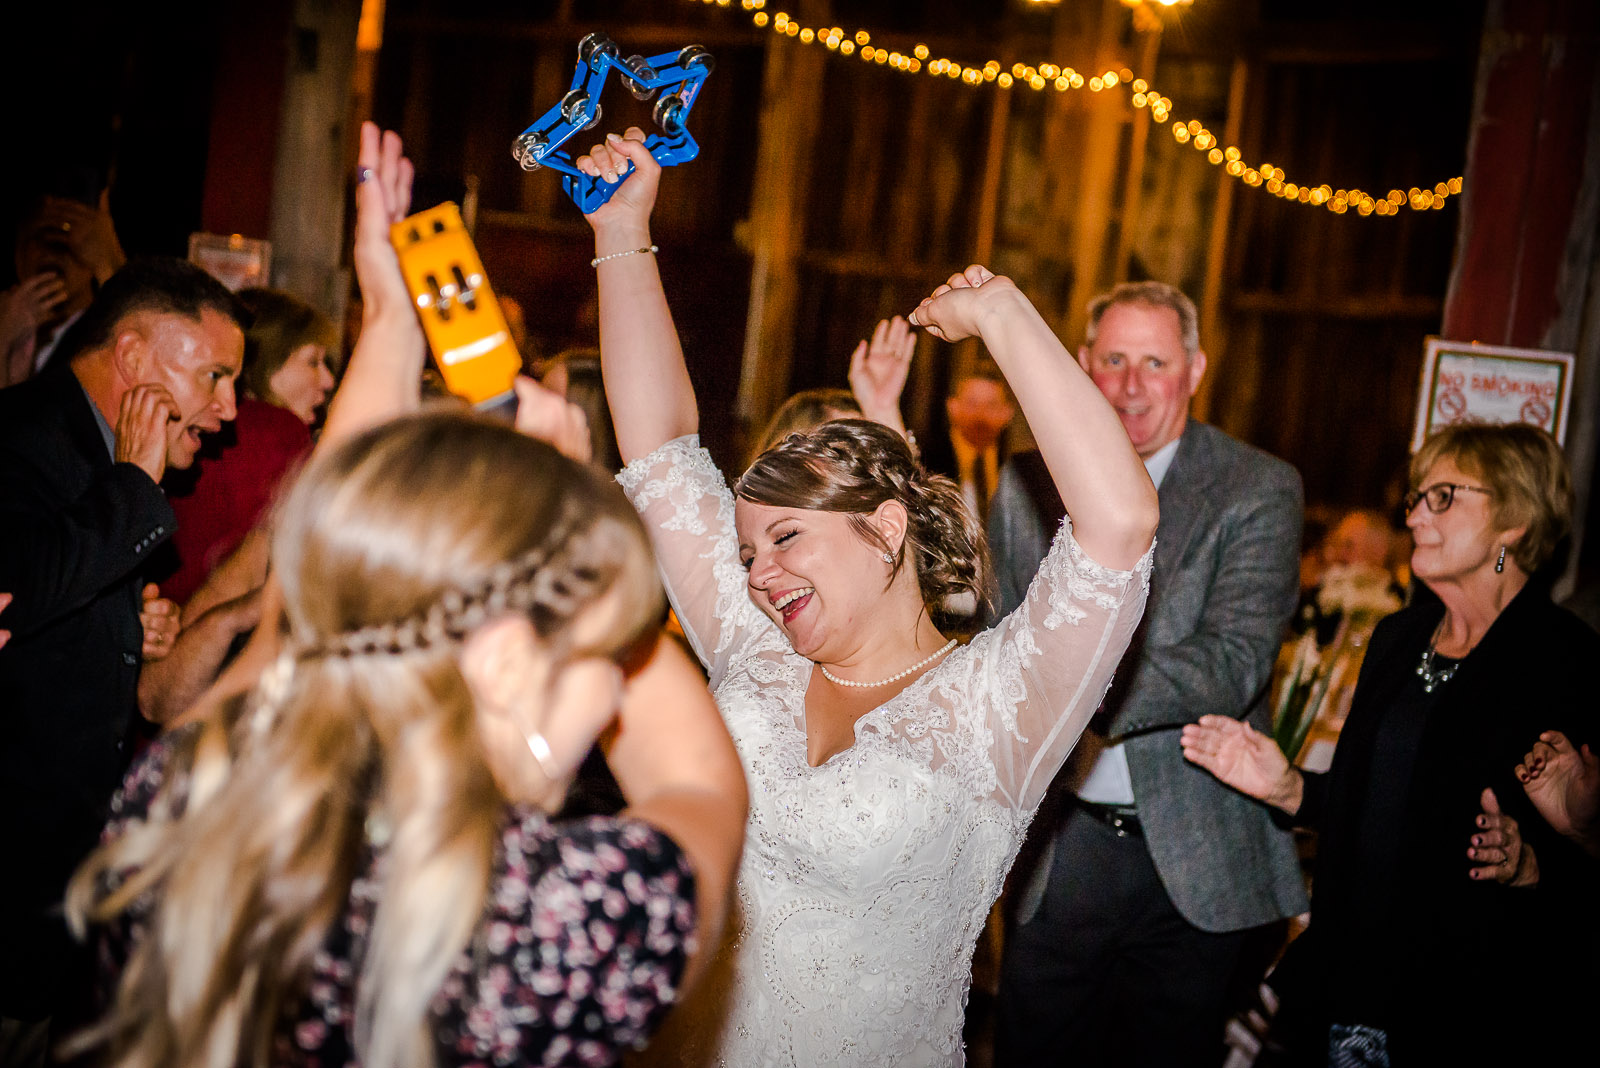 Eric_and_Christy_Photography_Blog_Wedding_Stacey_Geoff-68